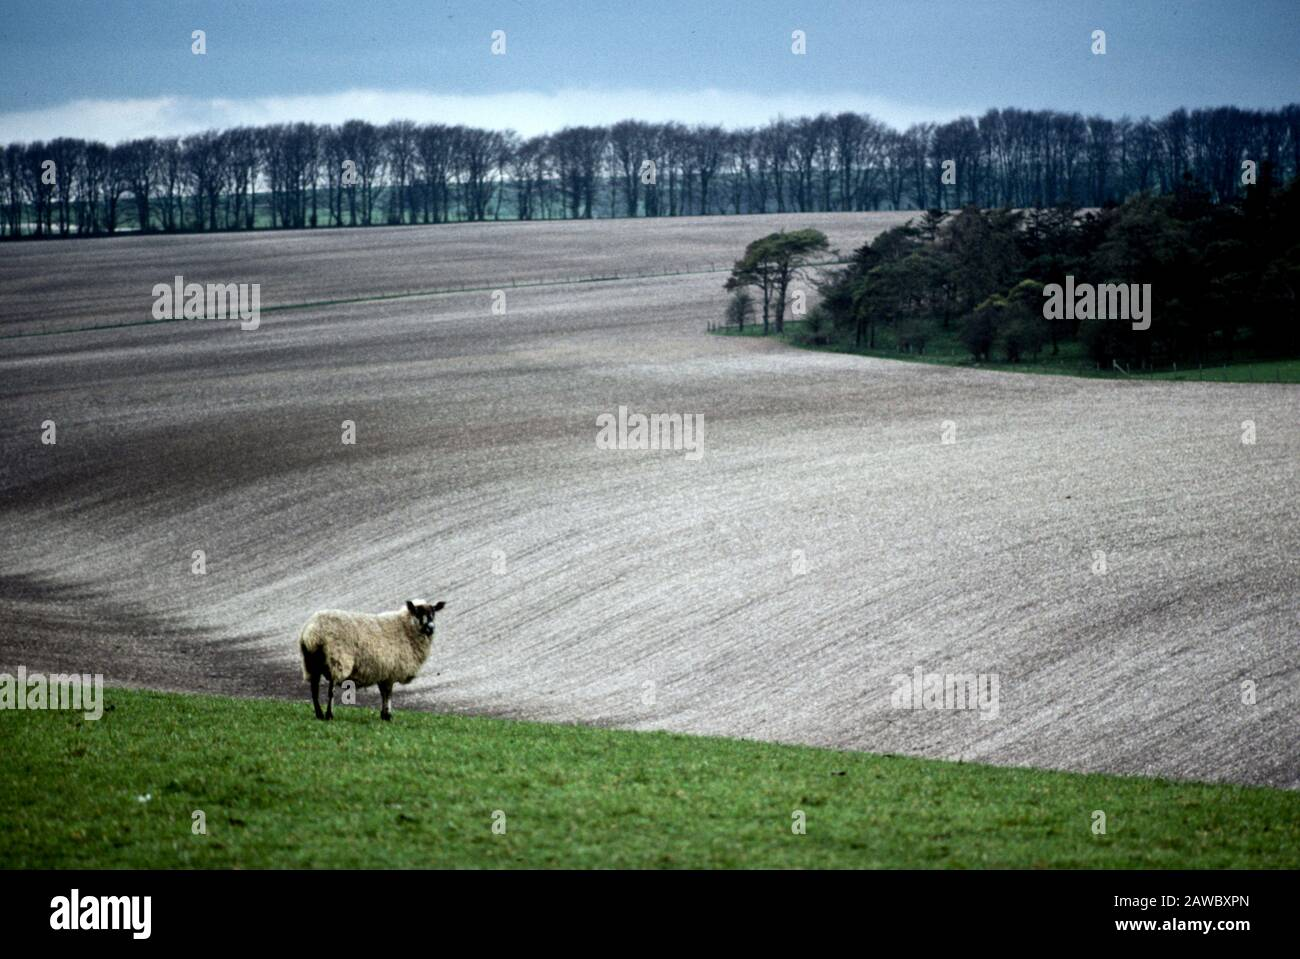 A lone sheep at the rolling landscape on the Salisbury Plain near Stonehenge in England, UK Stock Photo